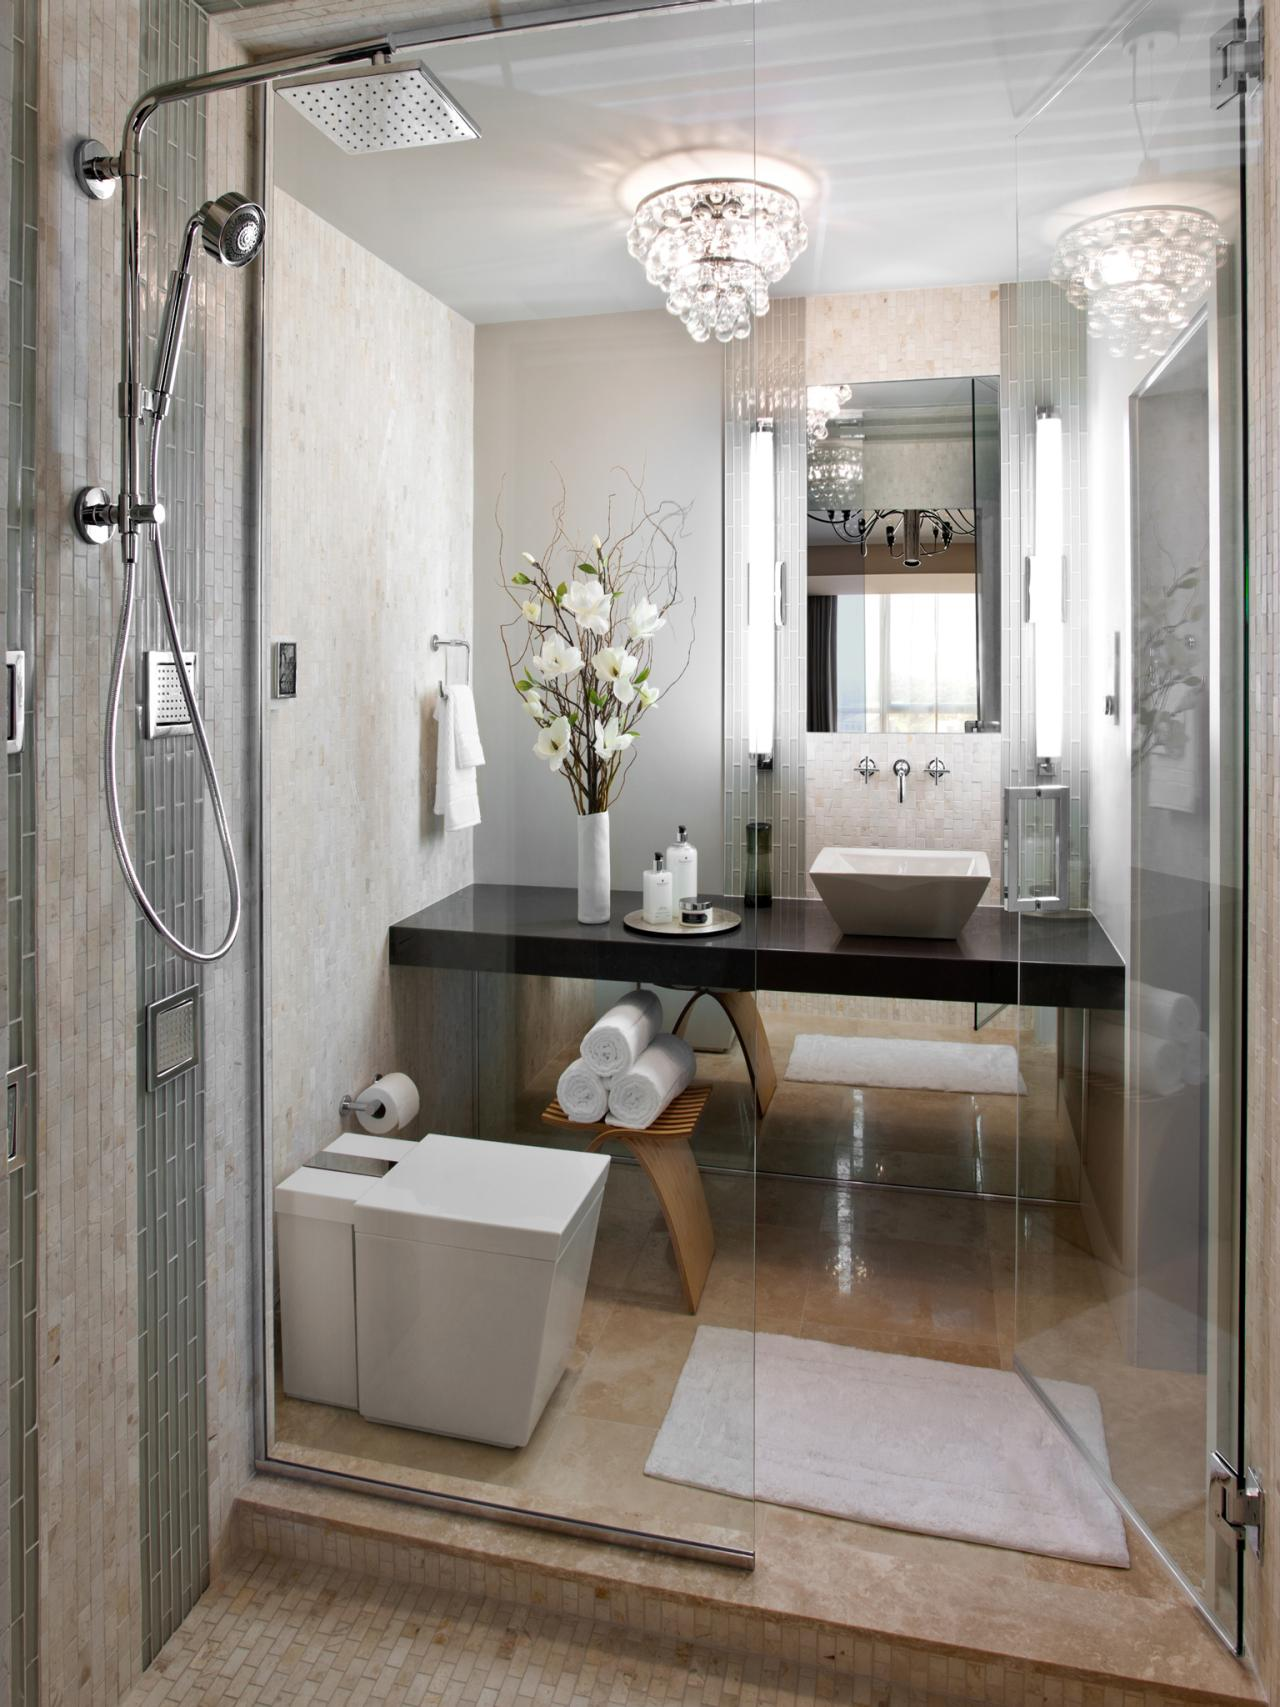 A sleek space with furnishings pared down the master Master bathroom designs